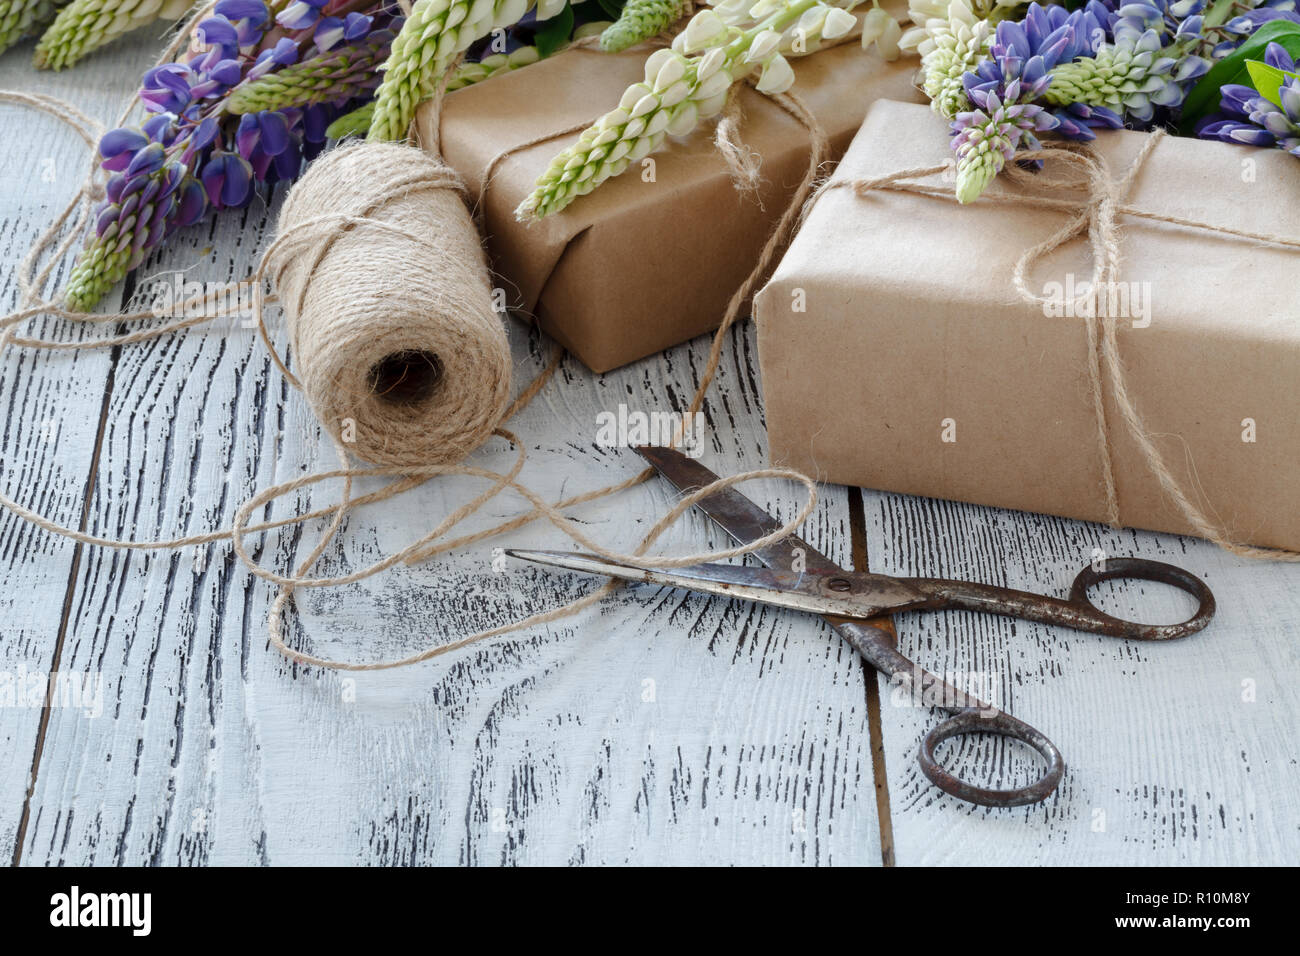 bouquet of the blue lupine flowers on a wooden table Stock Photo